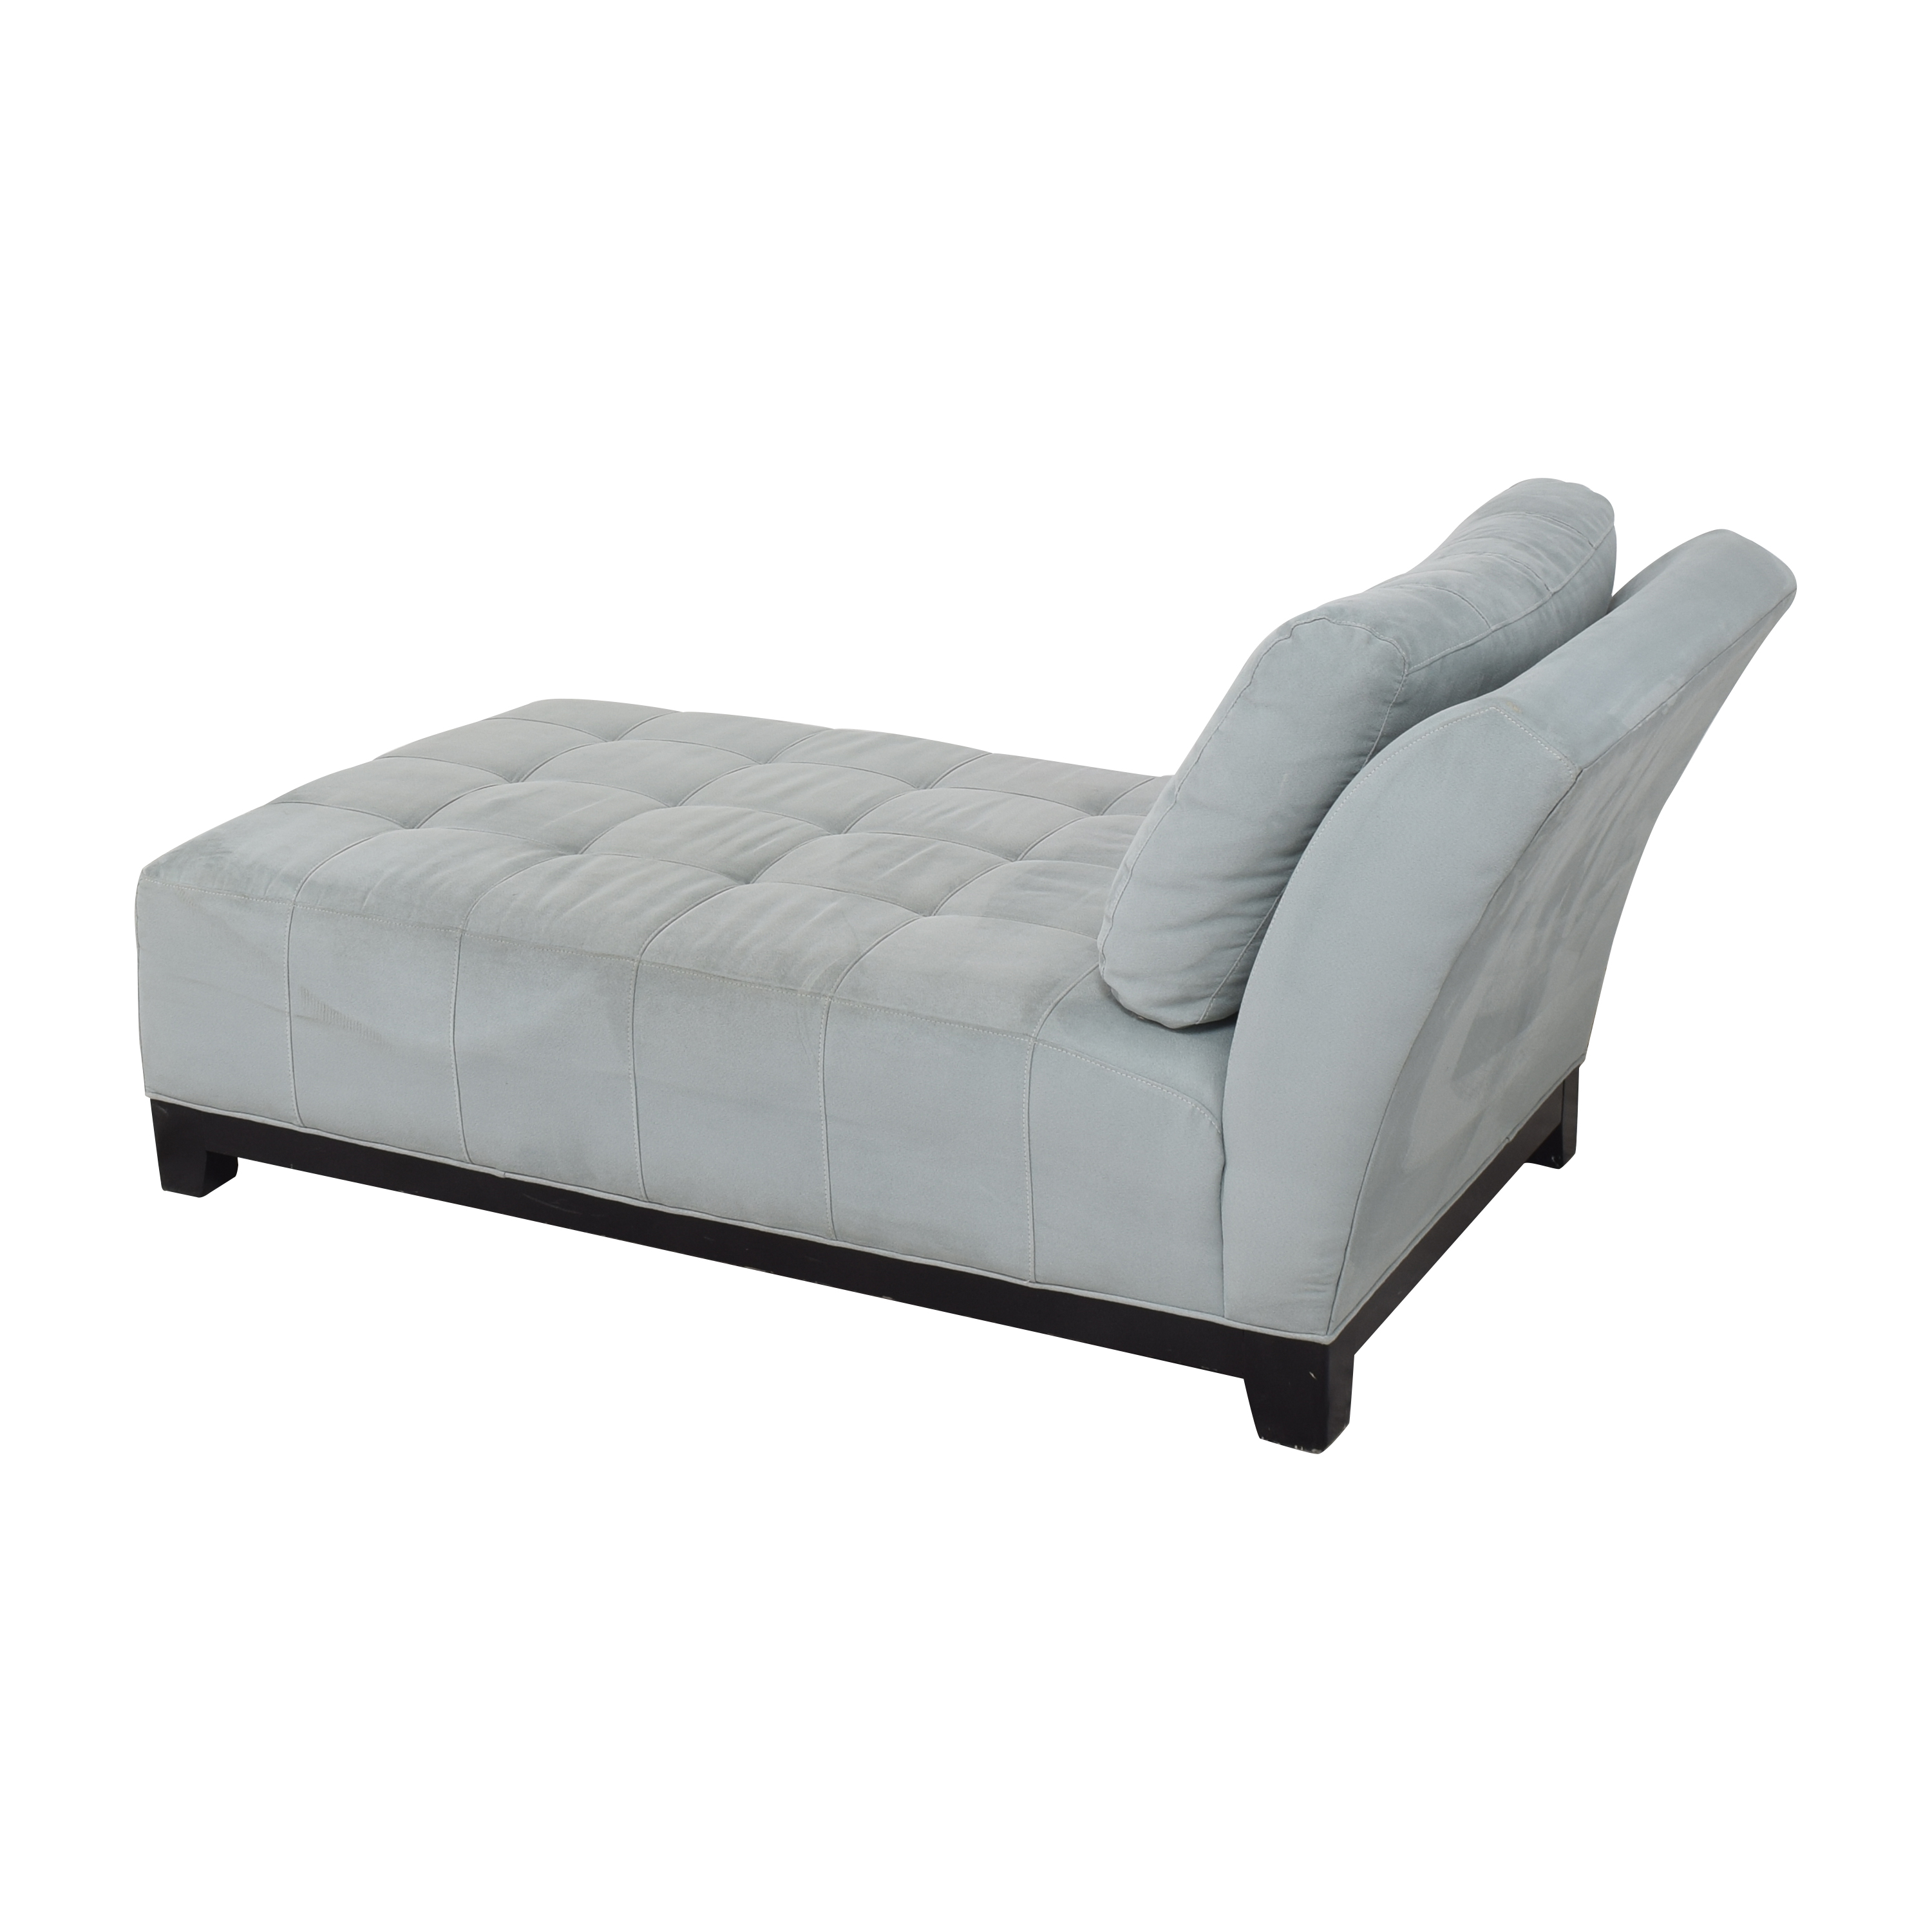 Raymour & Flanigan Raymour & Flanigan Tufted Chaise coupon